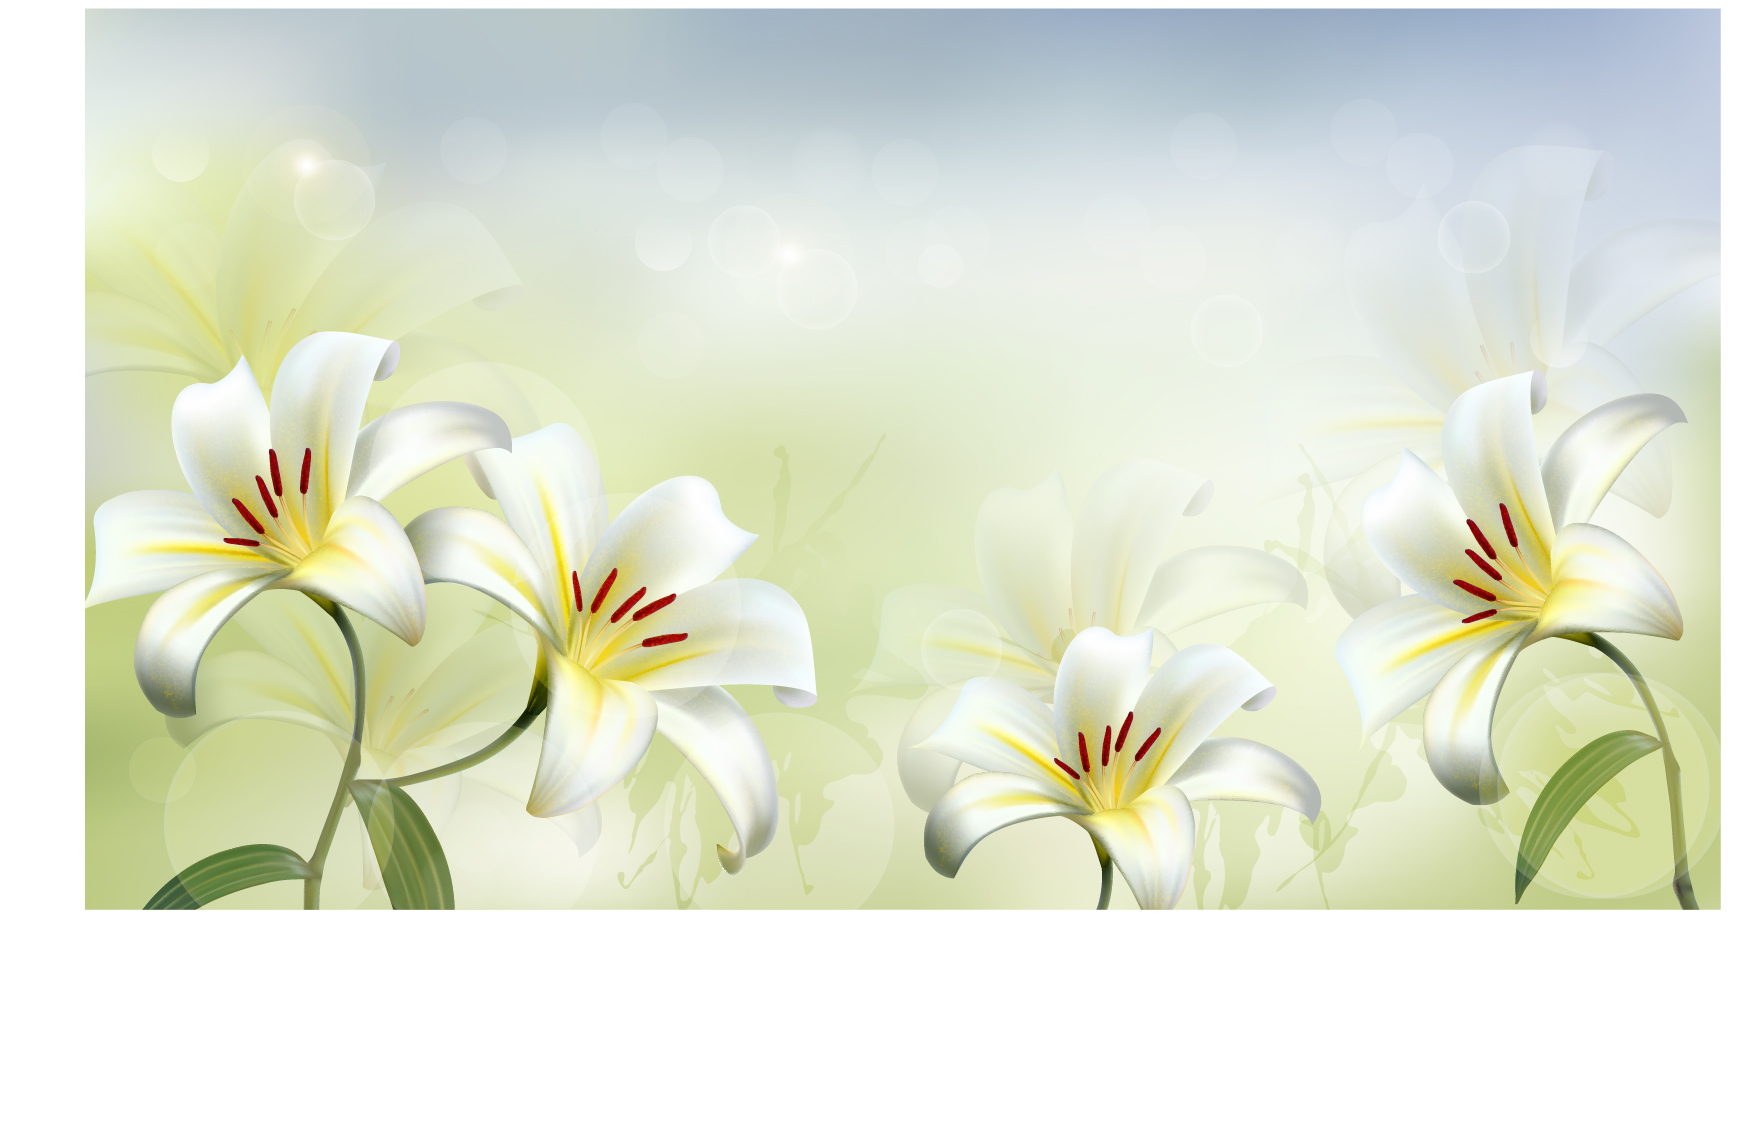 Tags: background , beautiful , flower , vector background .